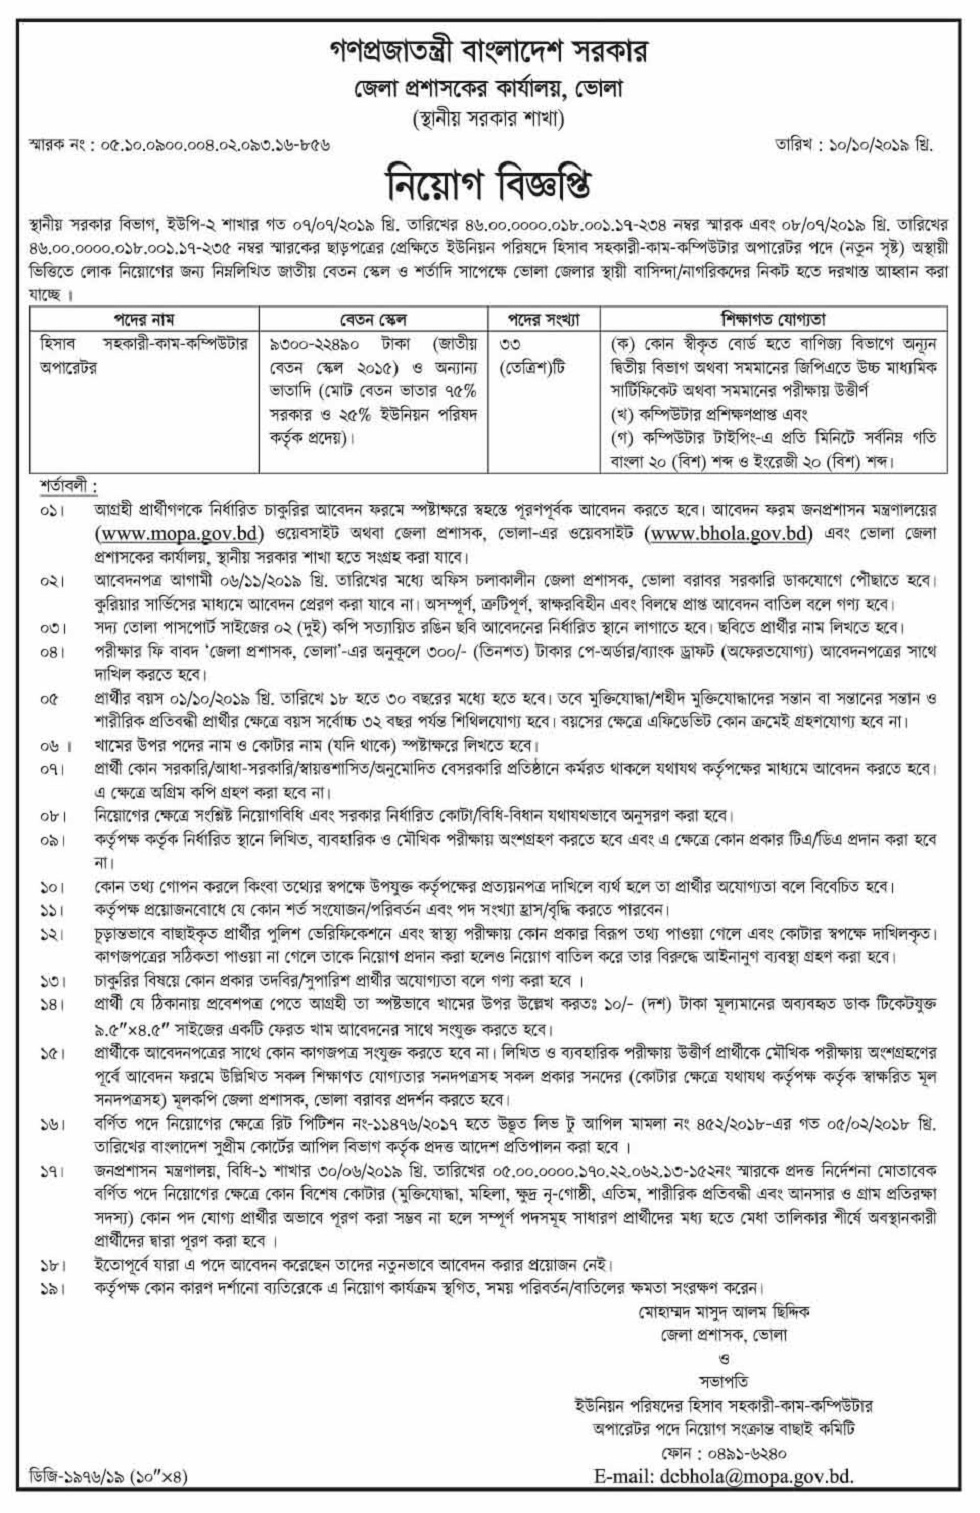 Voal Deputy Commissioner's Office Job Circular 2019